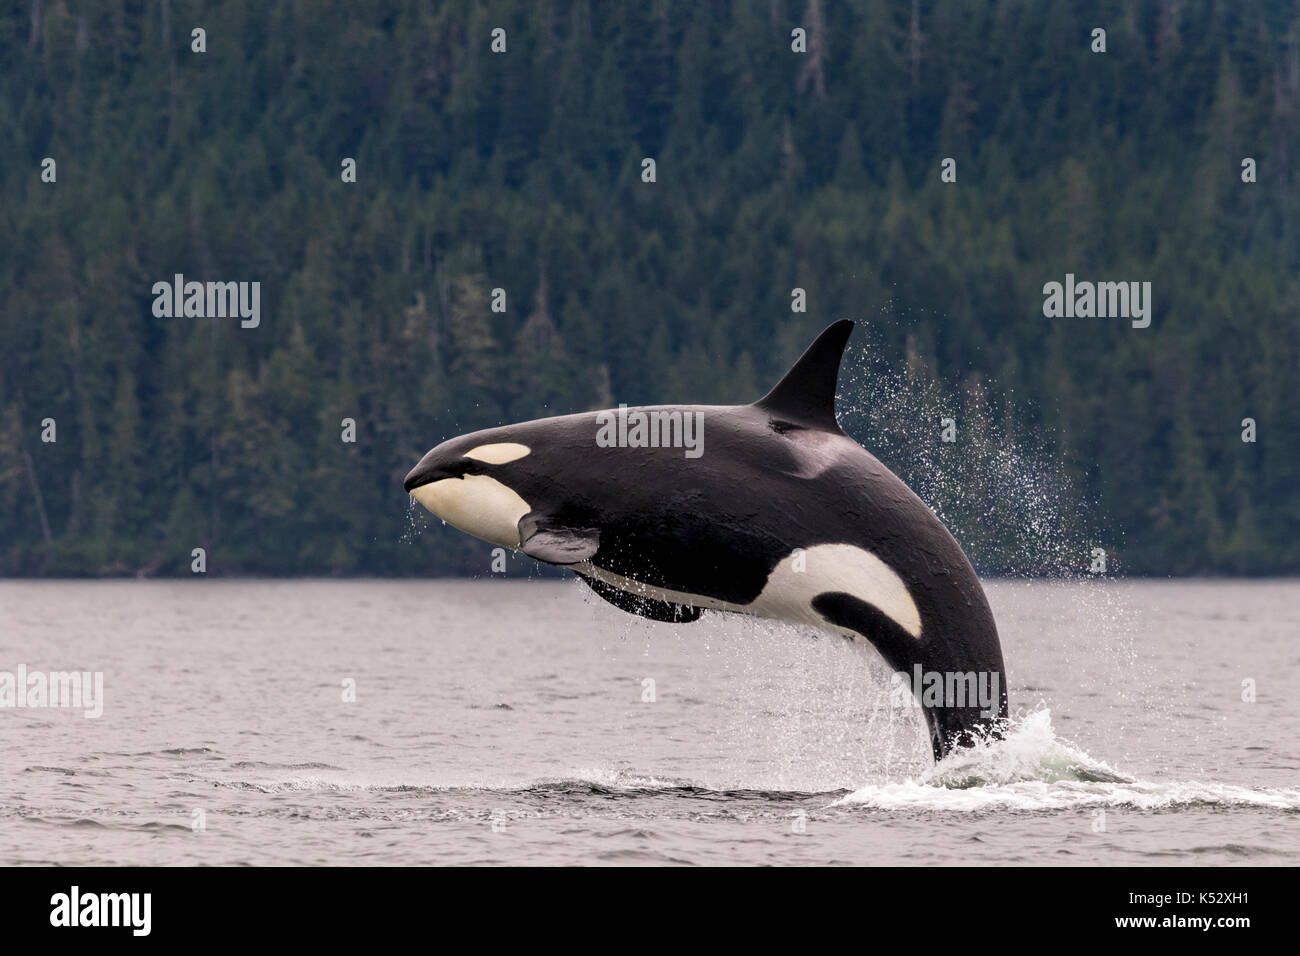 Female killer whale breaching in Johnstone Strait off Vancouver Island, British Columbia, Canada. - Stock Image